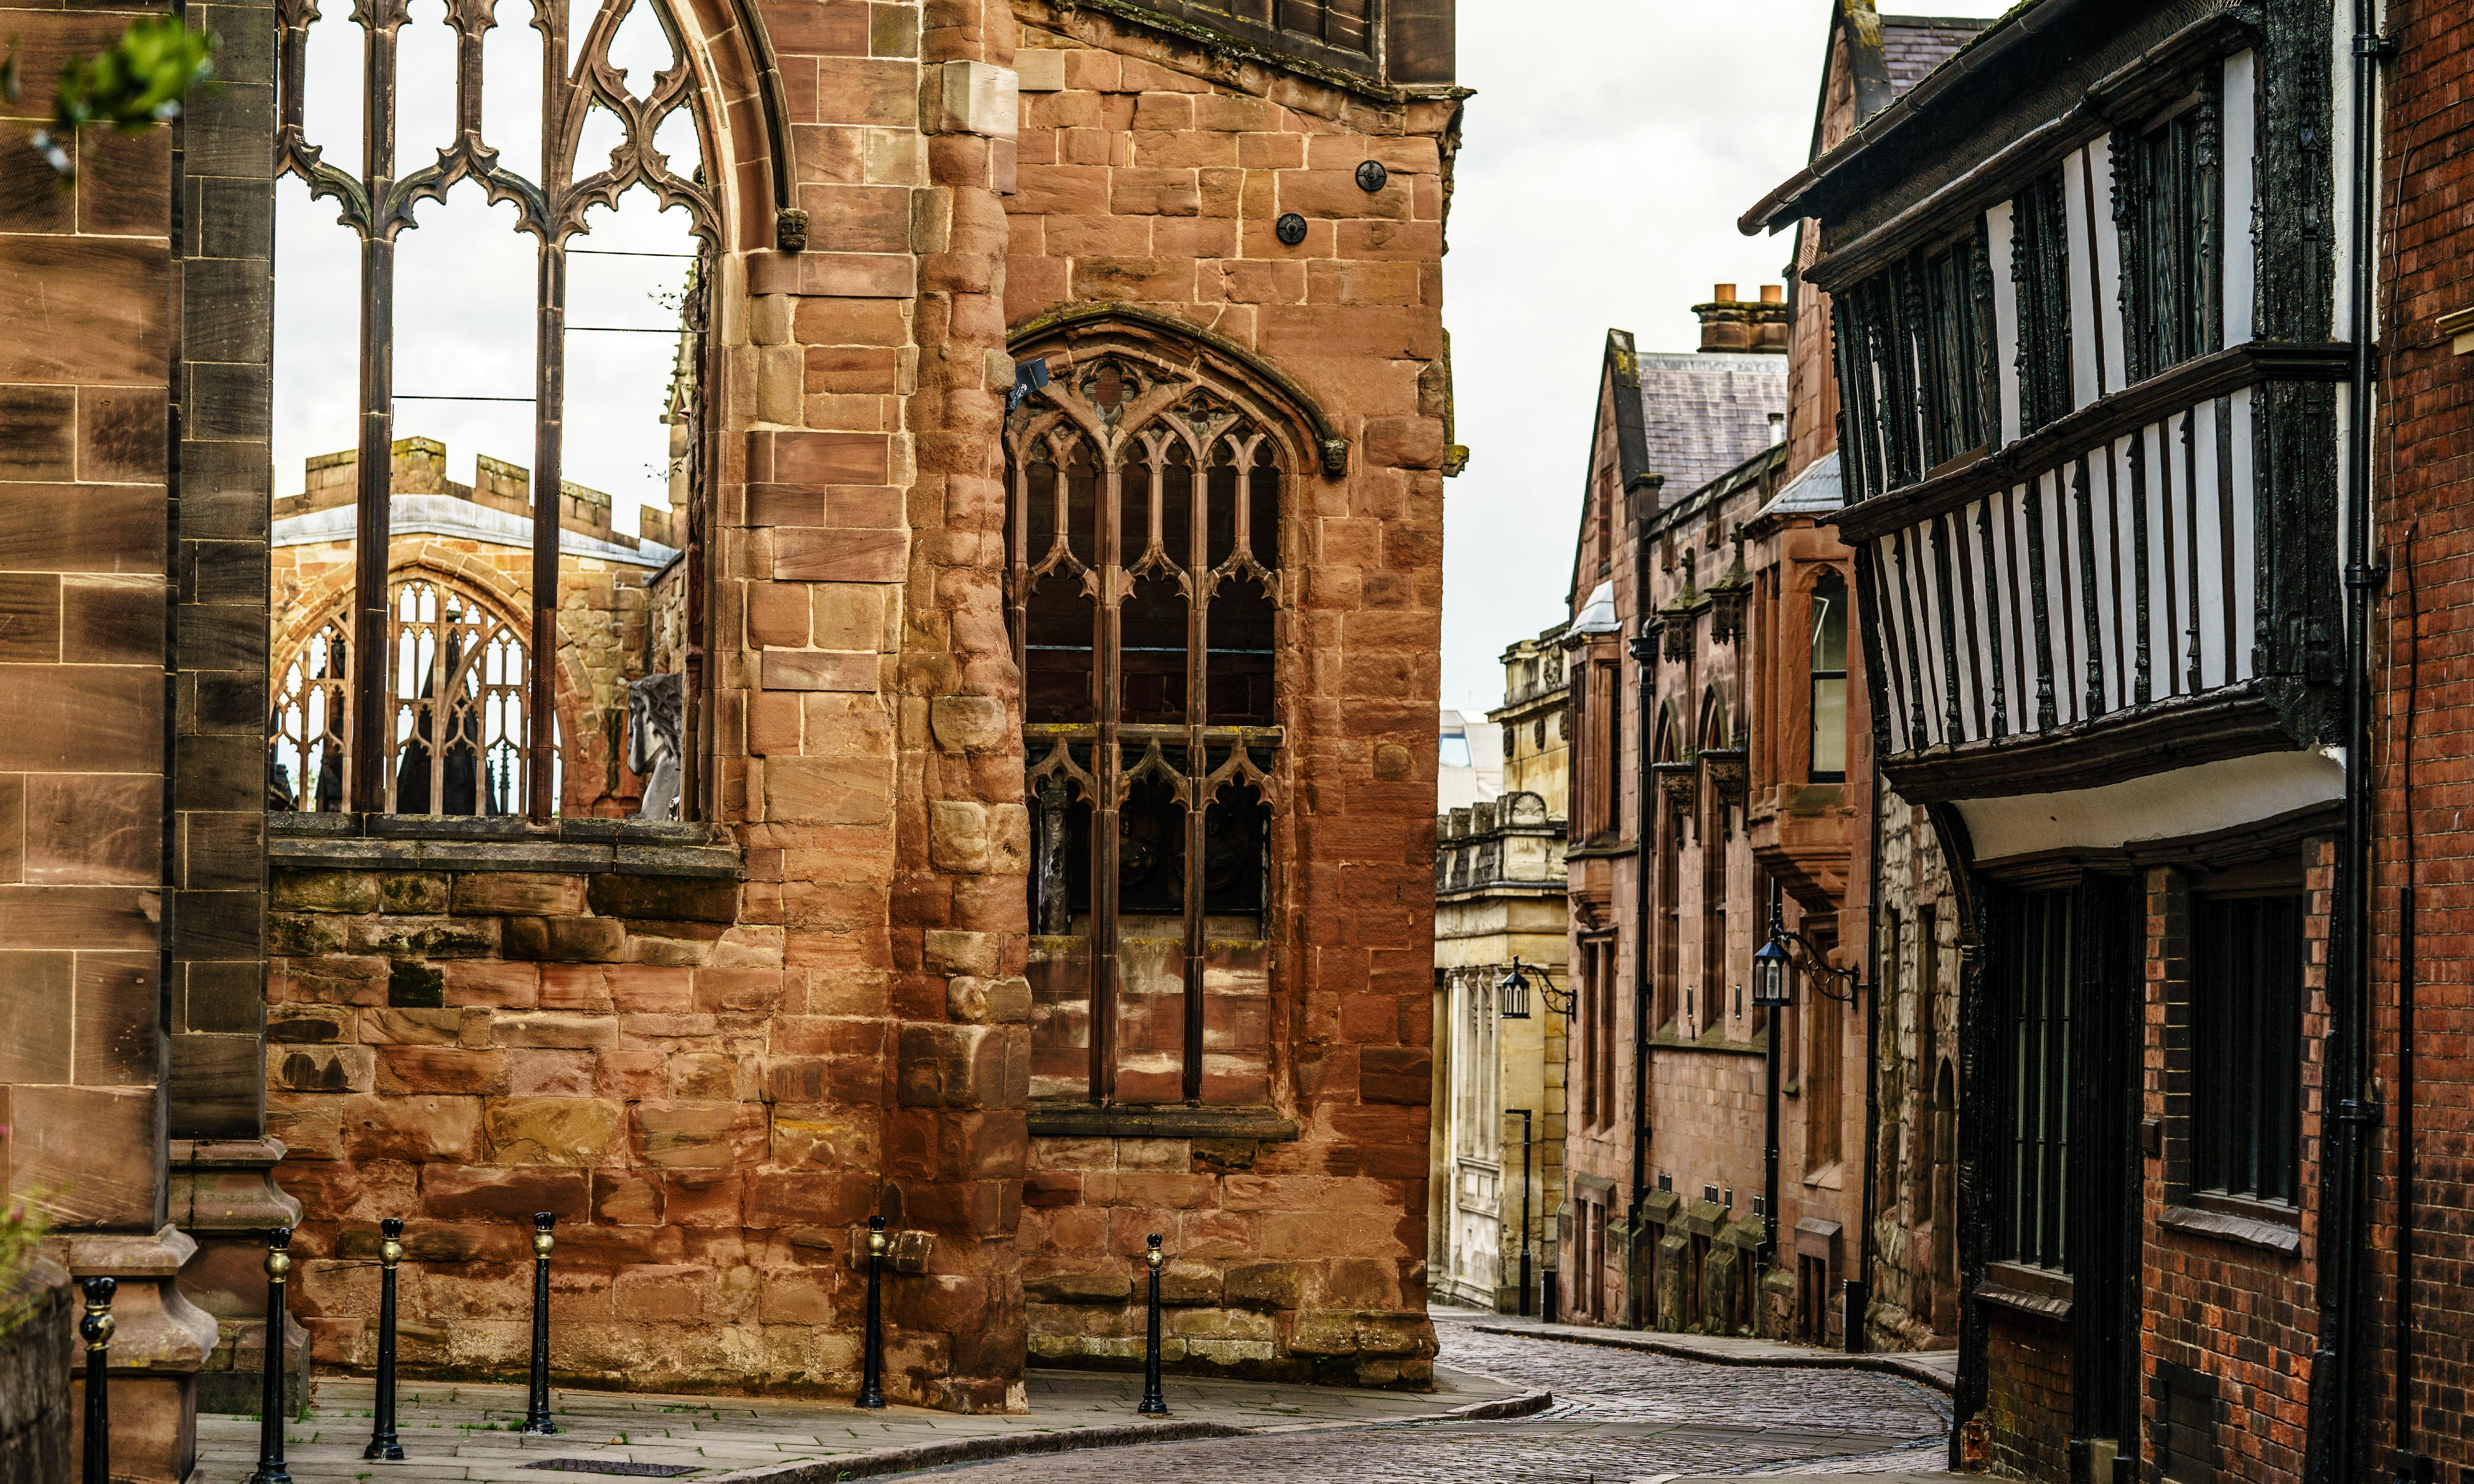 Let's move to Coventry: 'It's the next UK city of culture'